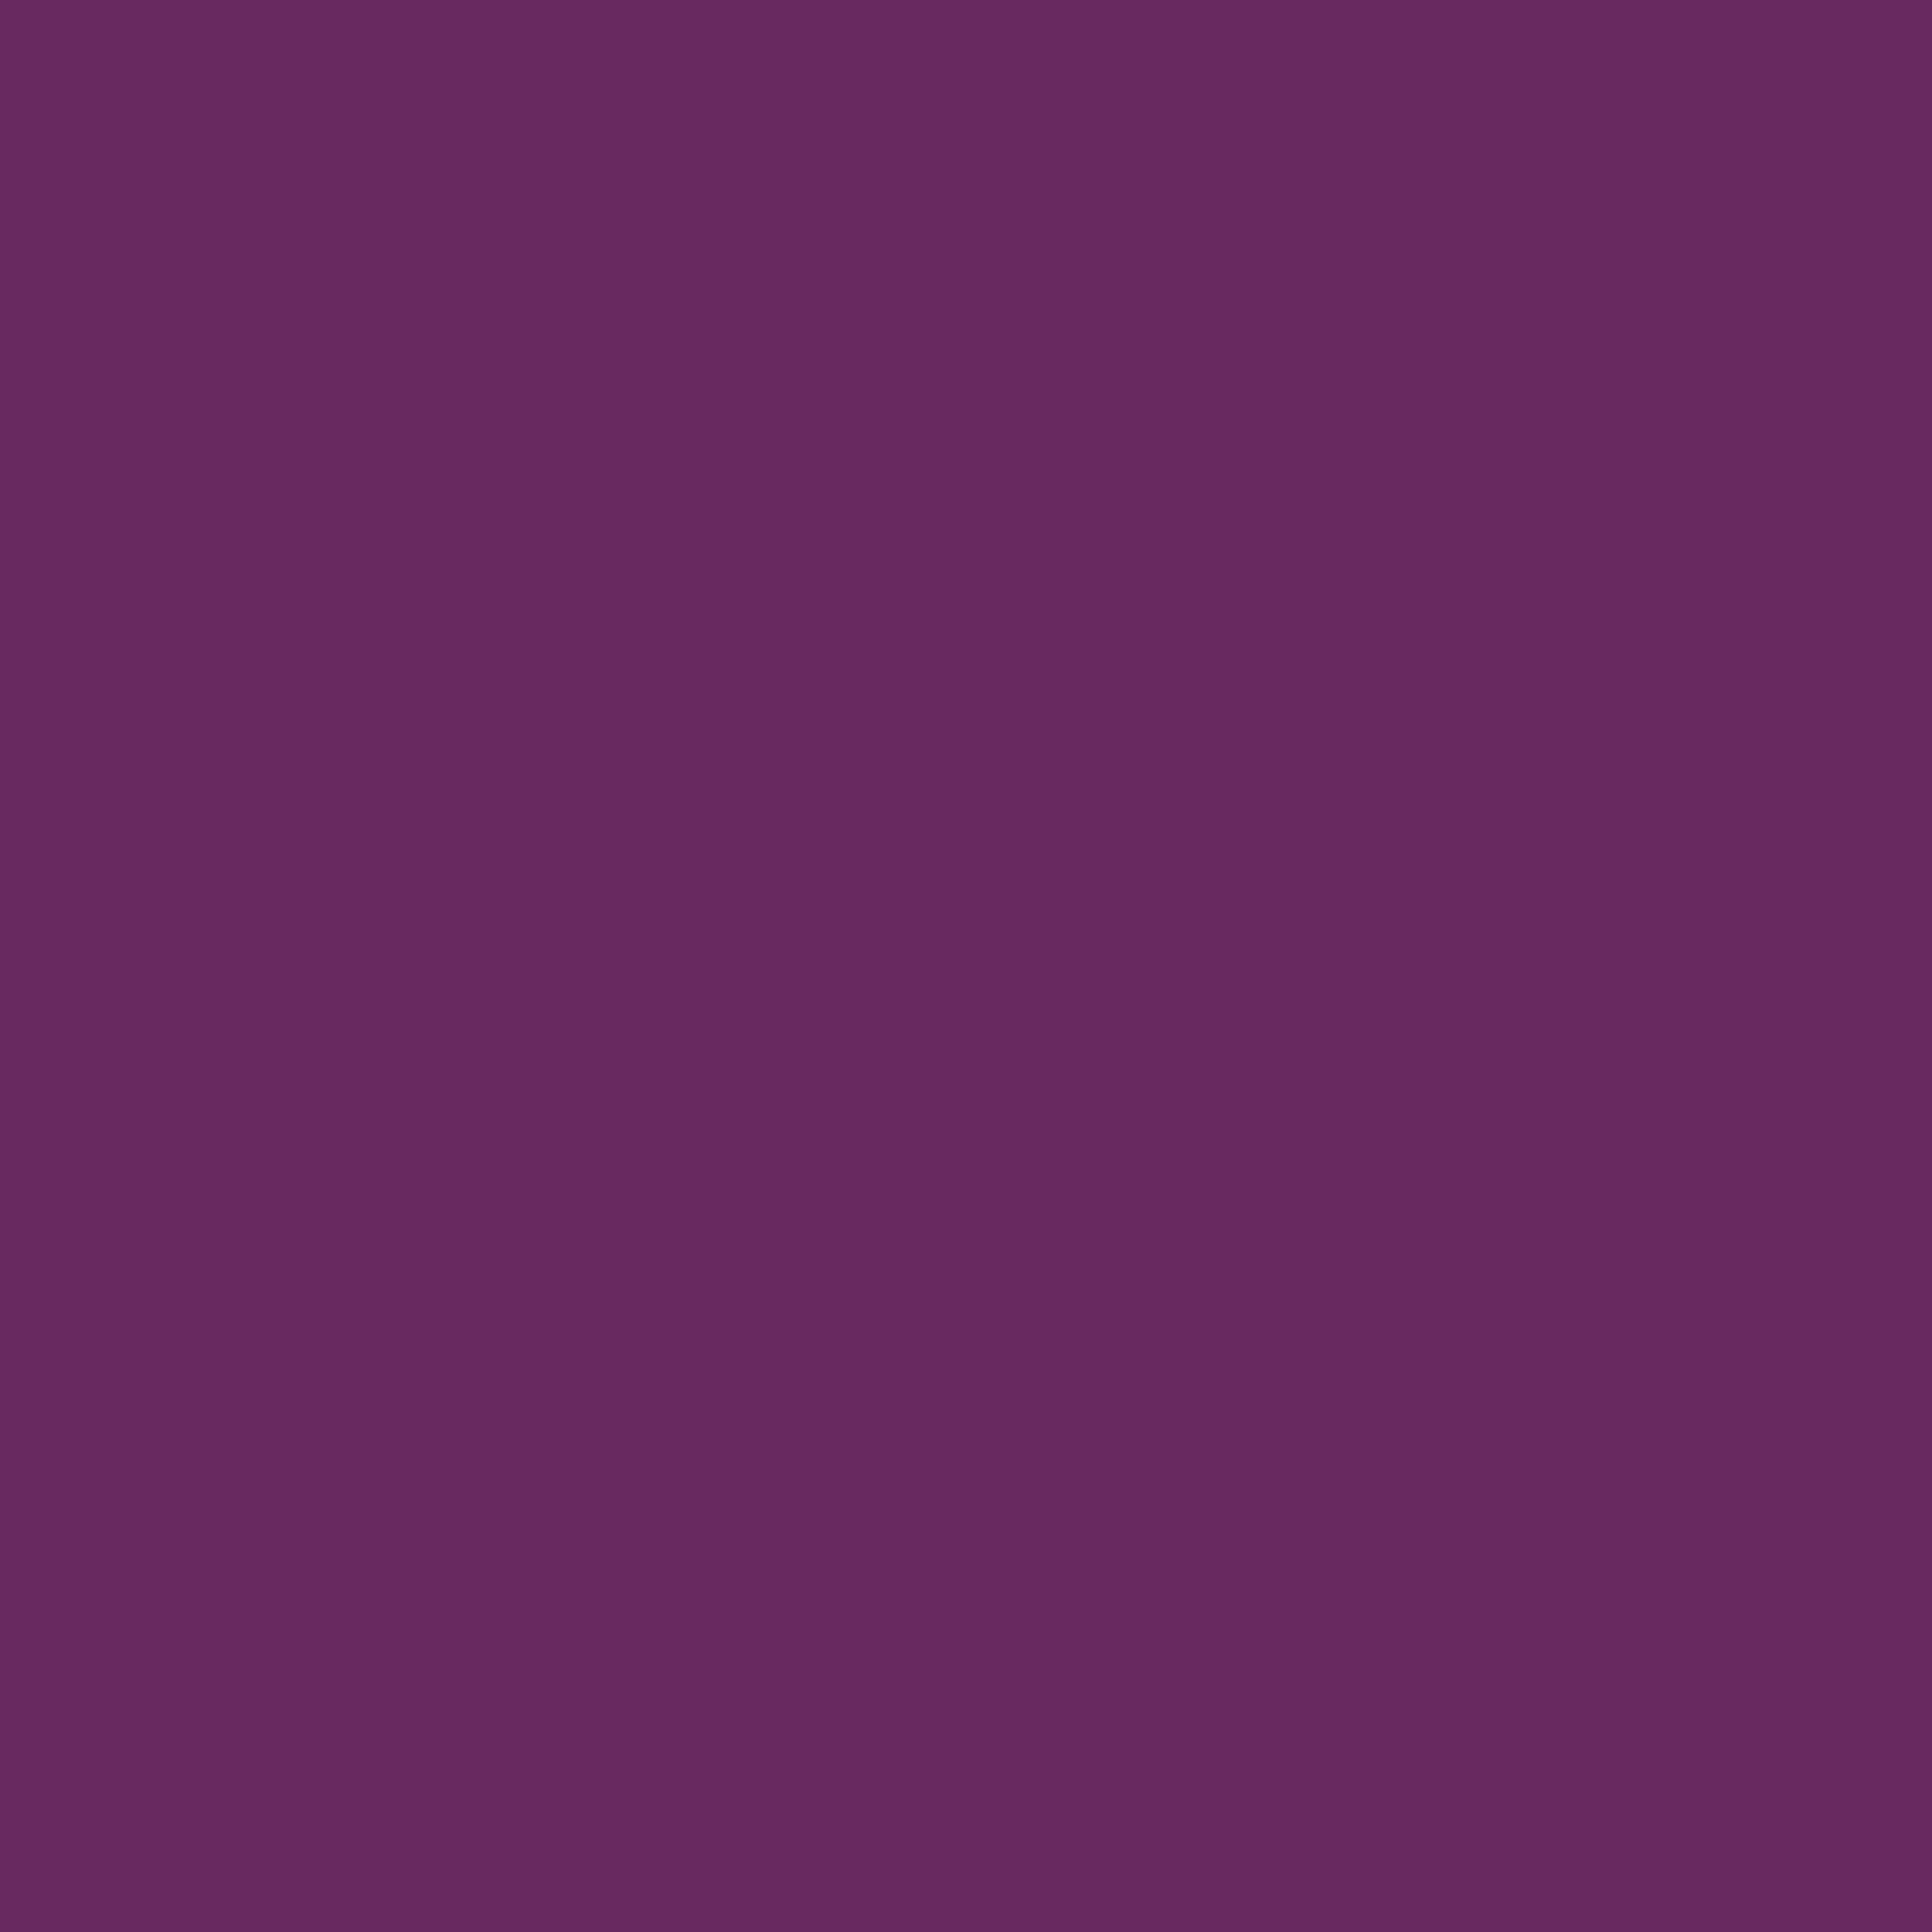 2048x2048 Palatinate Purple Solid Color Background